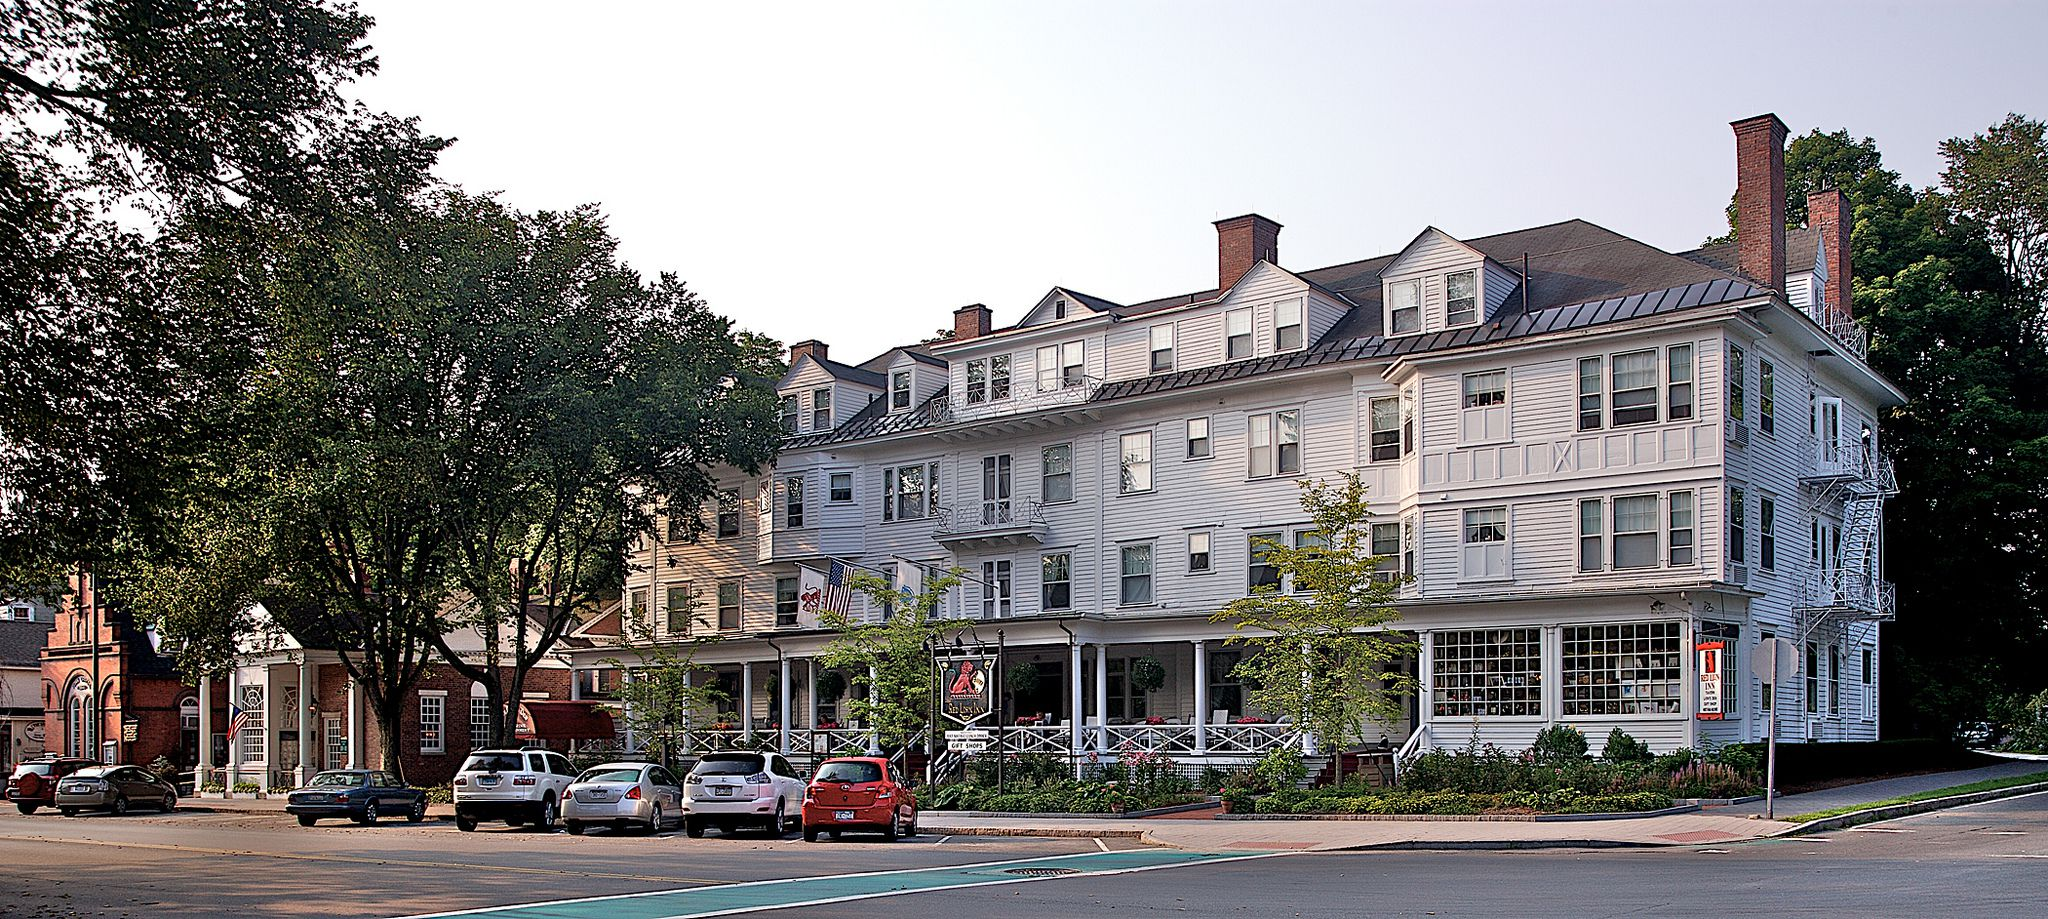 The Oldest Hotels in America